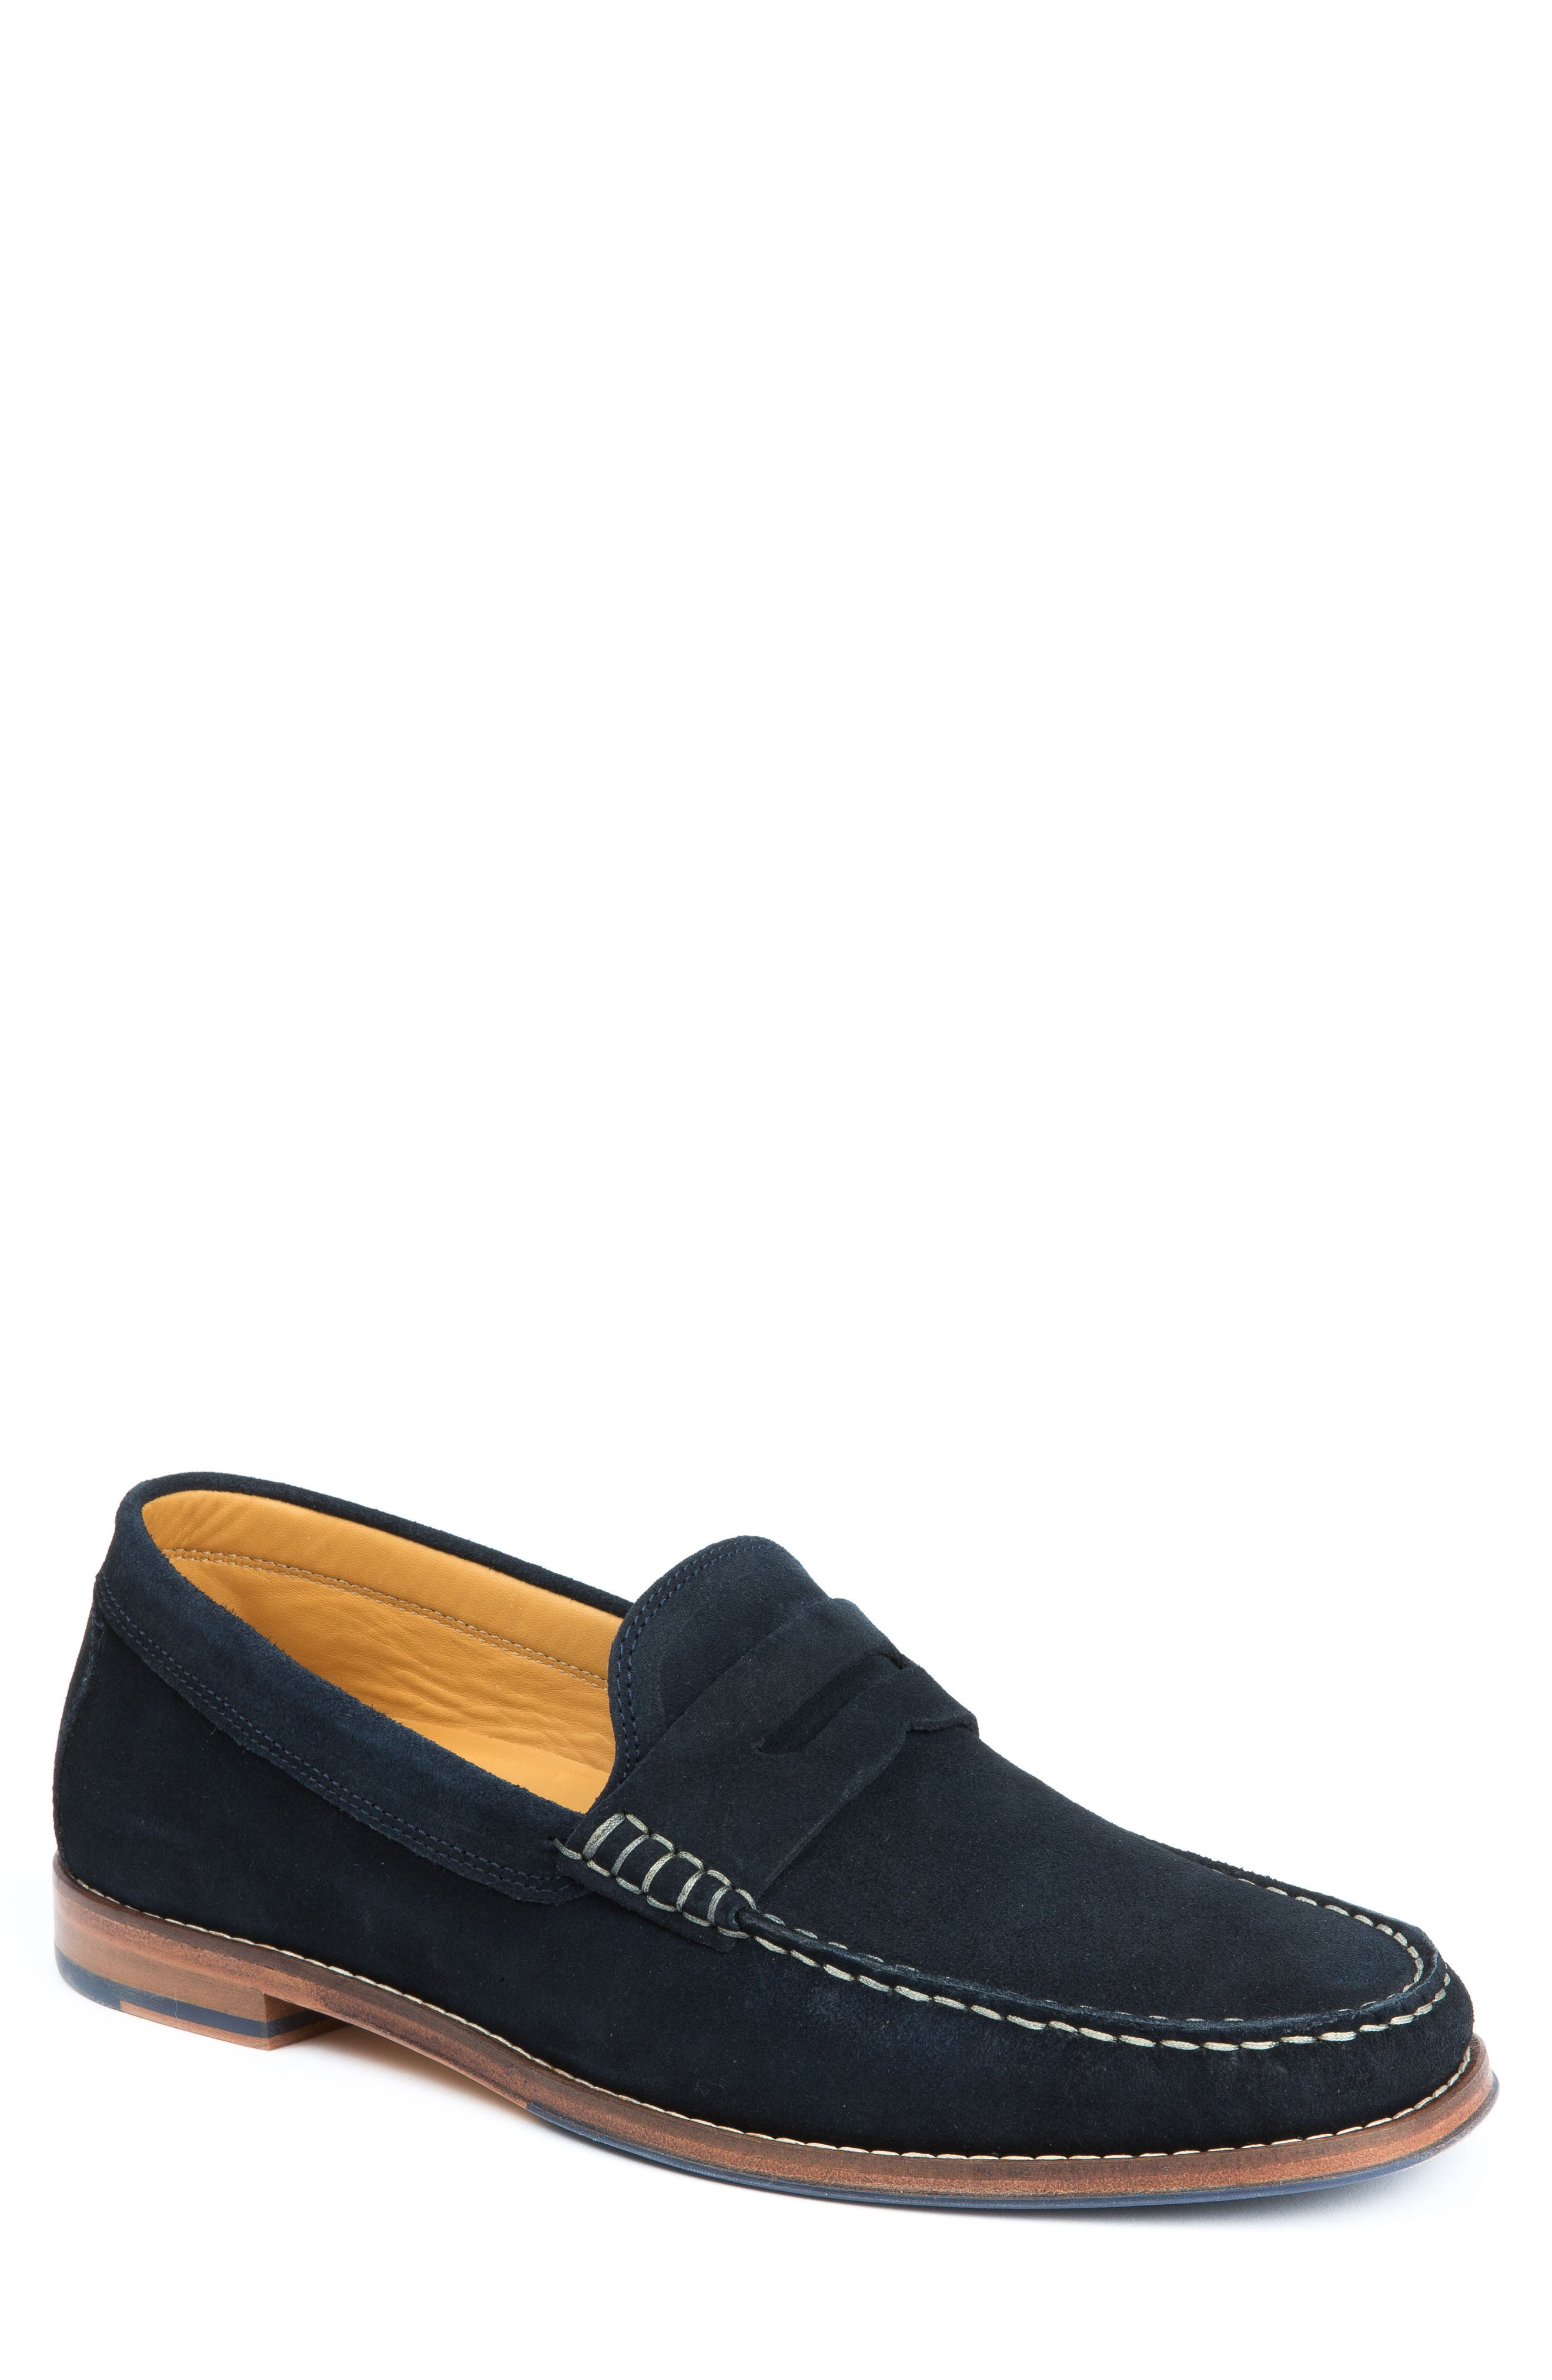 Ripleys Penny Loafer,                         Main,                         color,